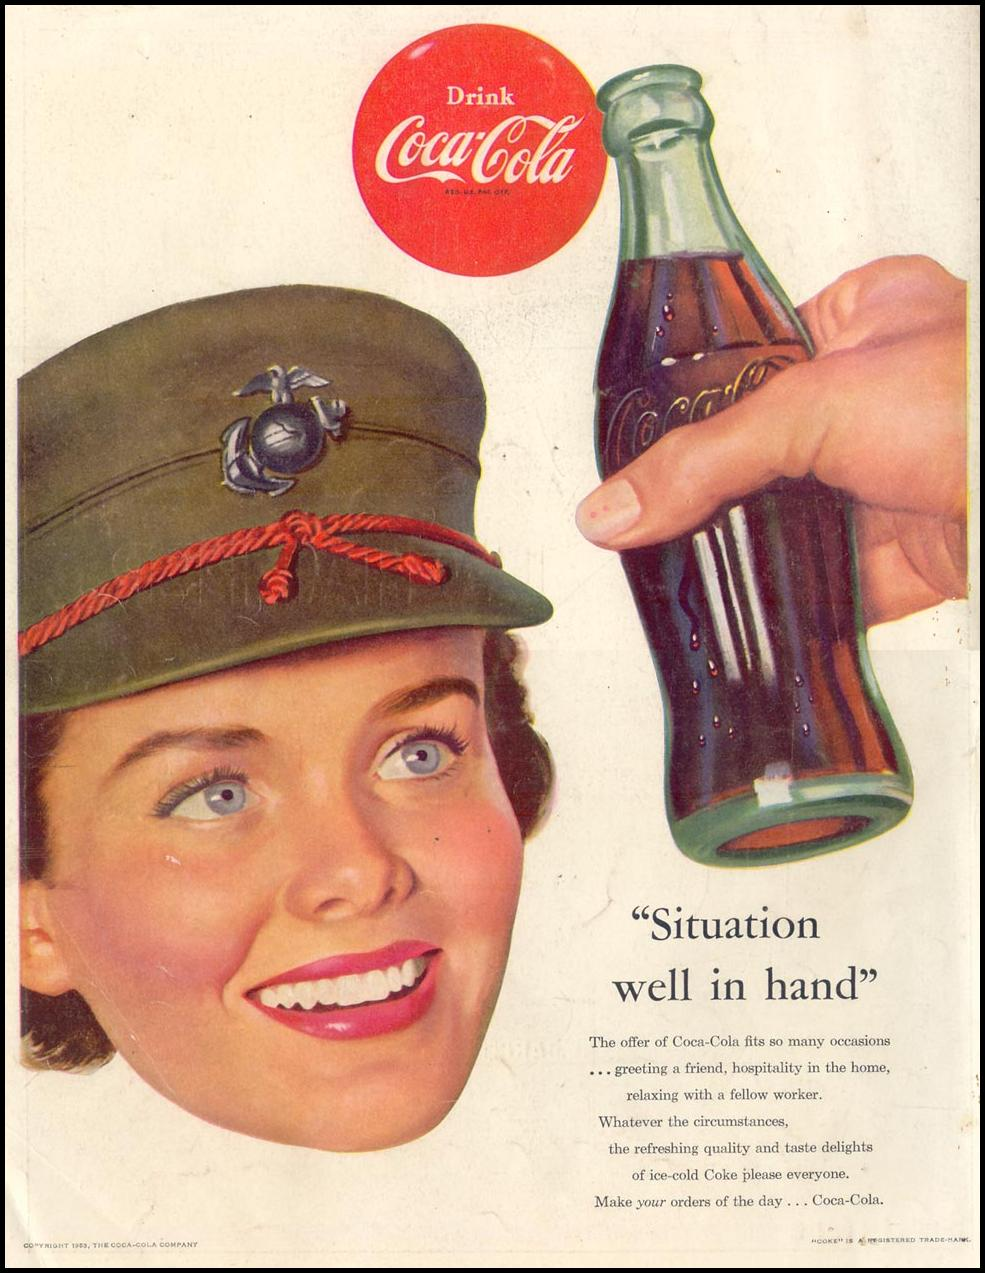 COCA-COLA LIFE 02/02/1953 BACK COVER